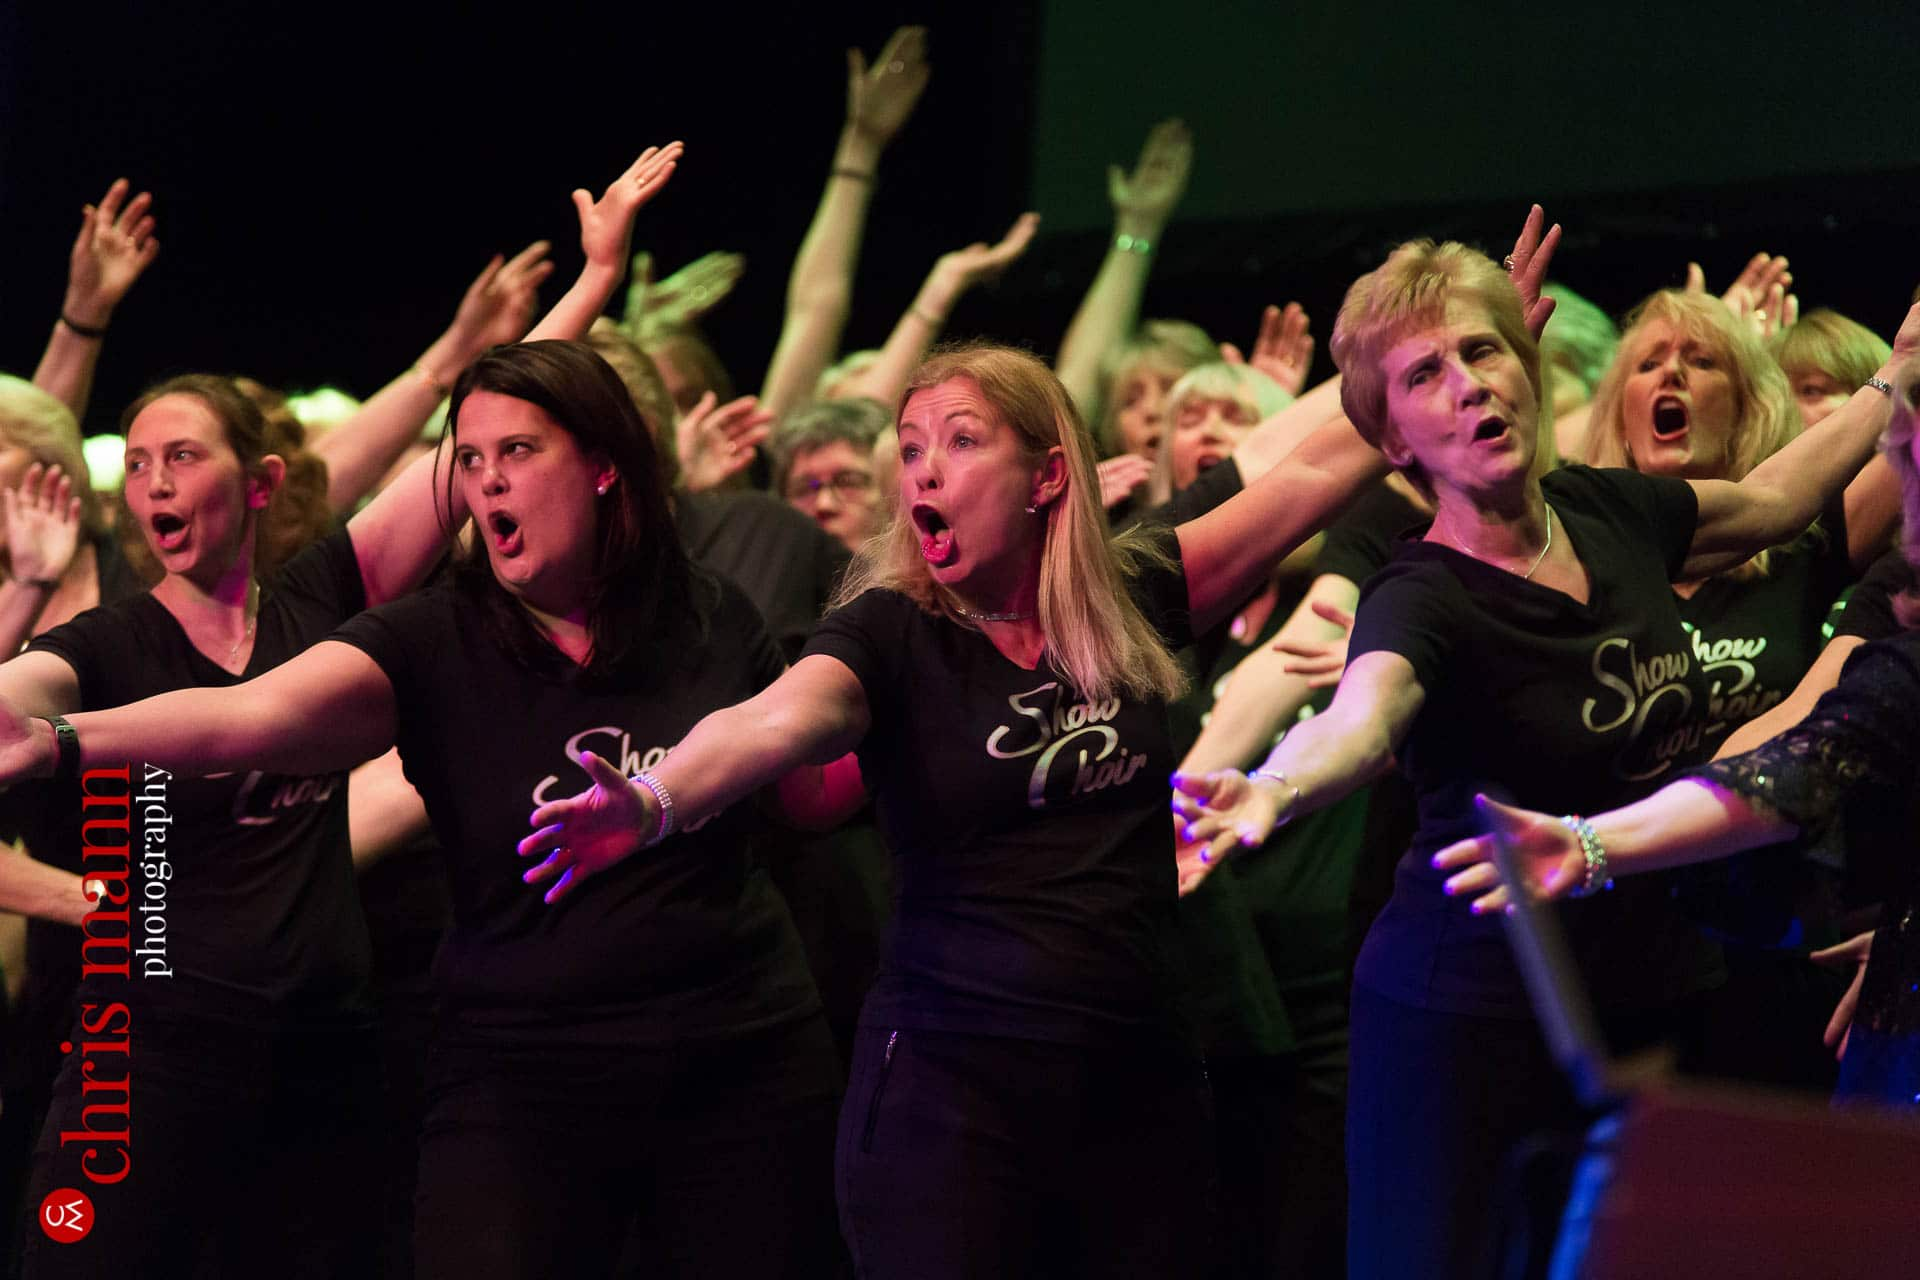 Banstead Show Choir singing at Choiroke 2016 concert Dorking Halls